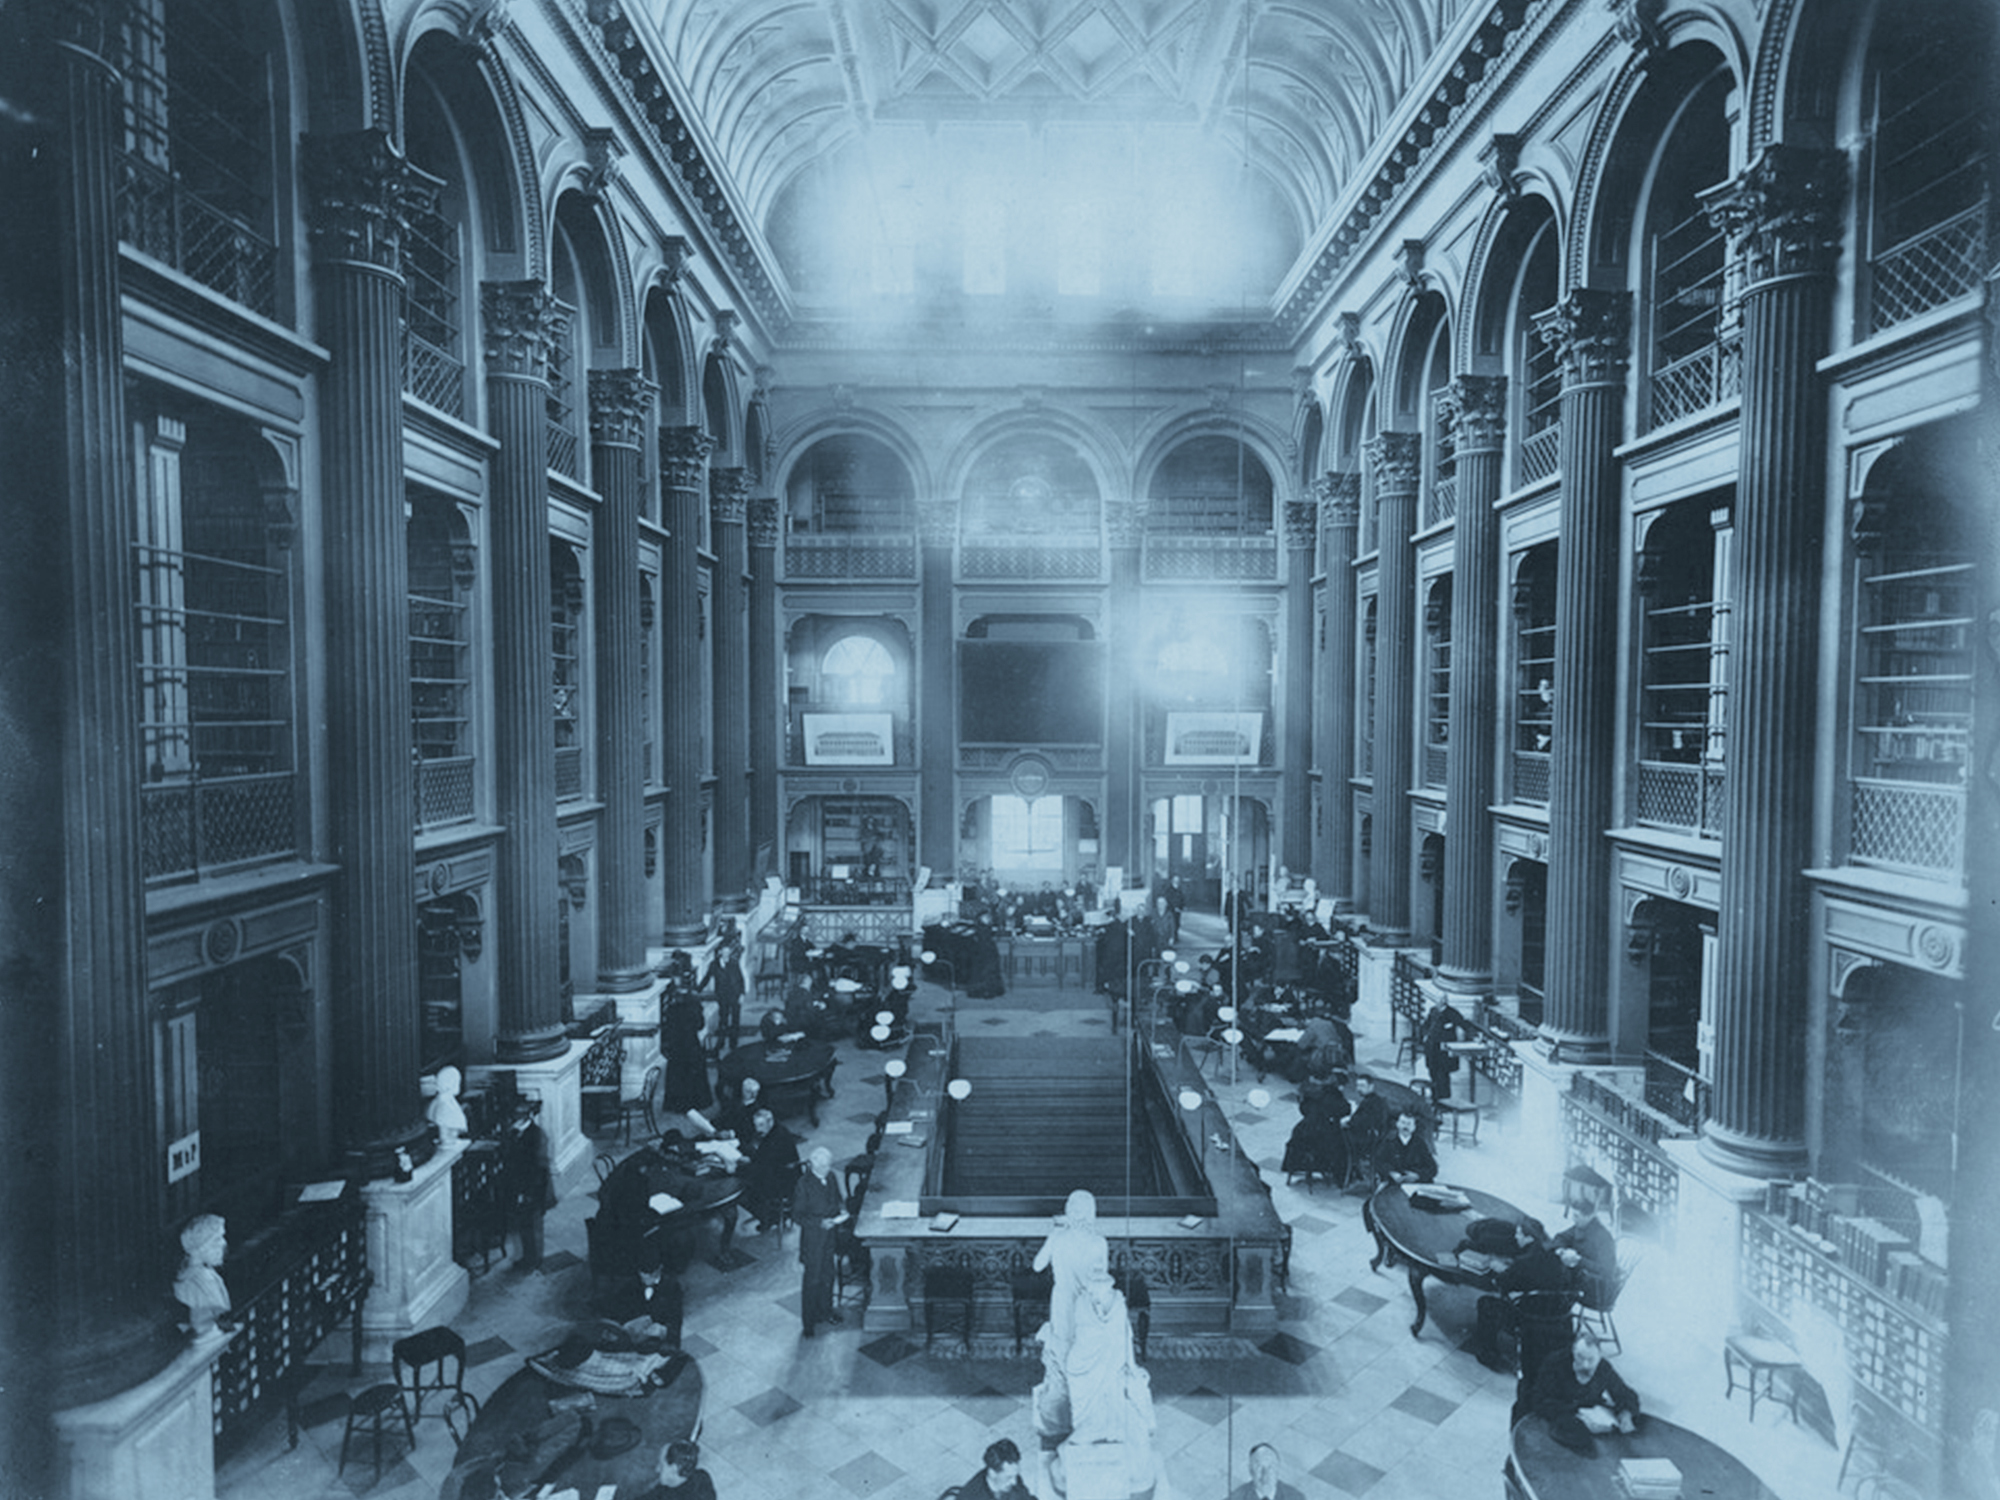 The Boston Library